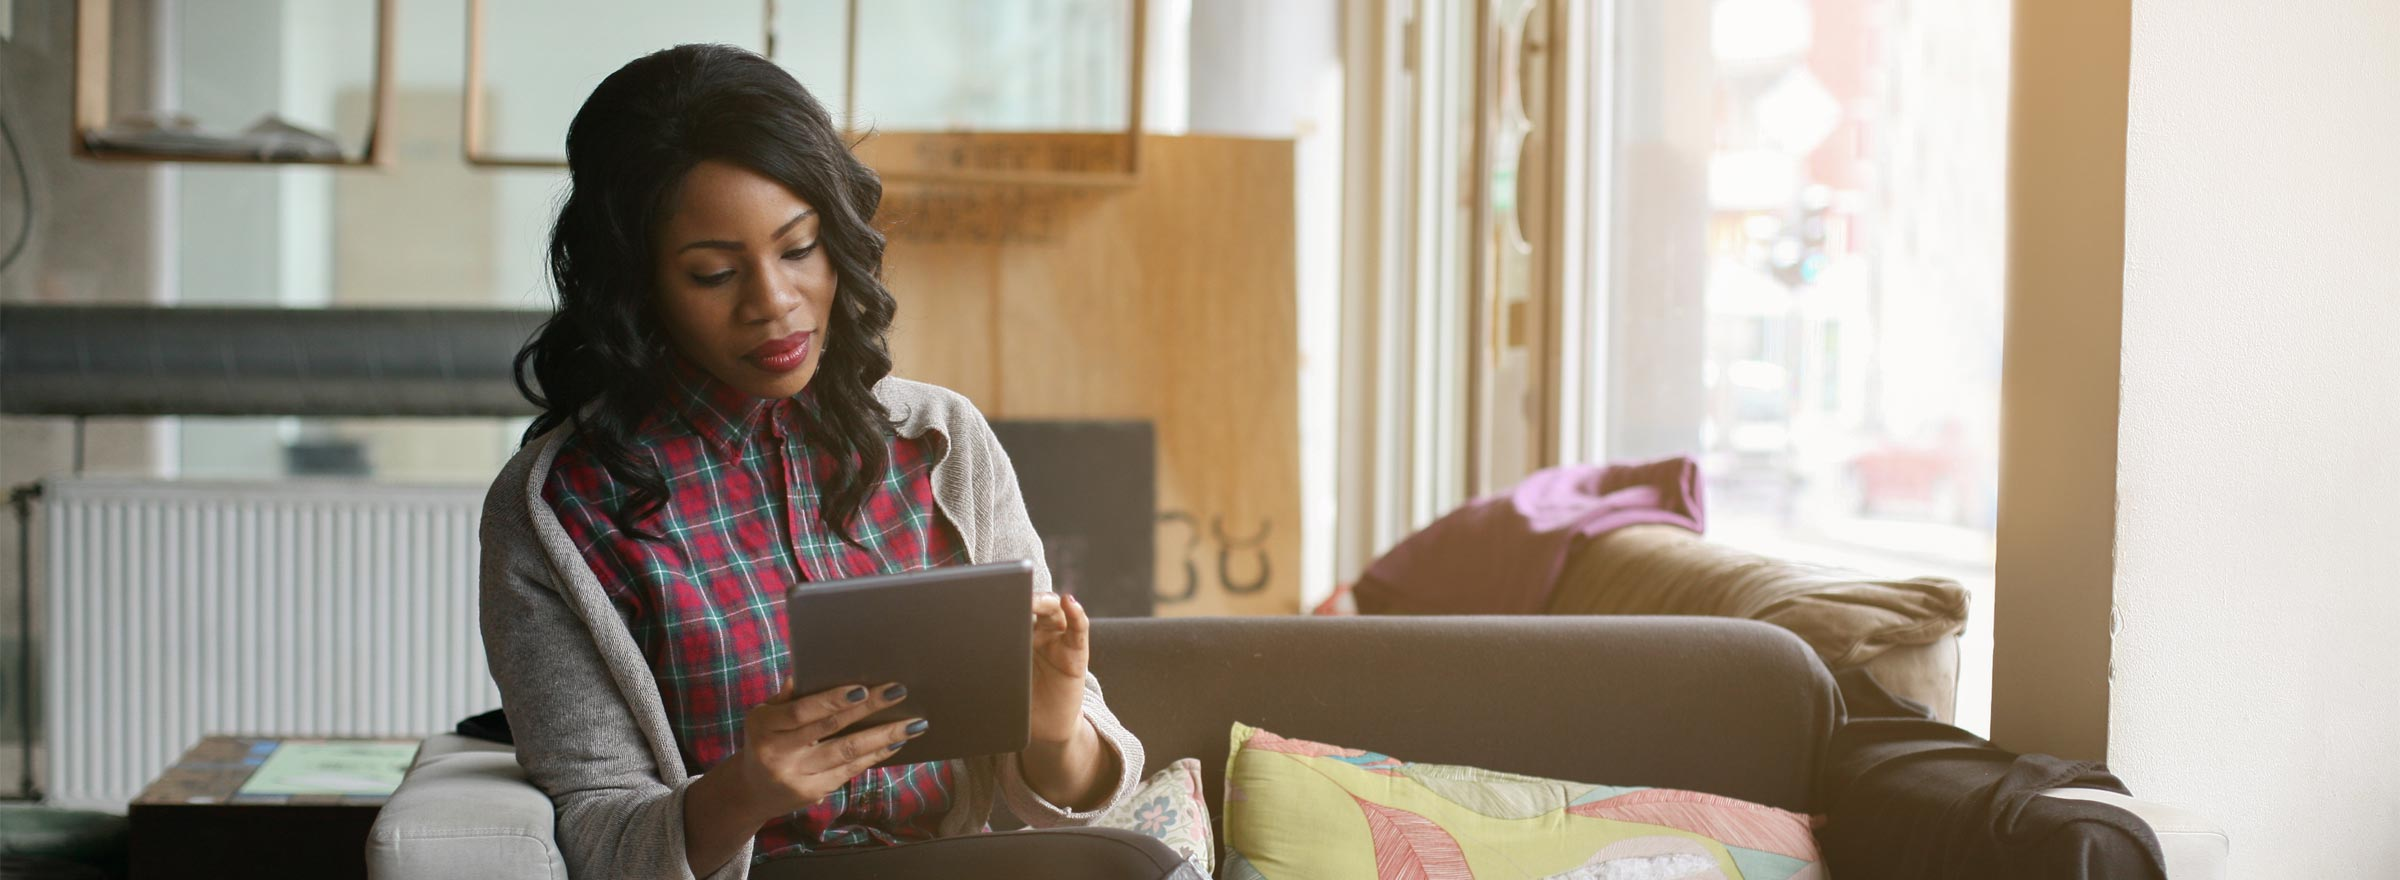 woman using a tablet in a home setting